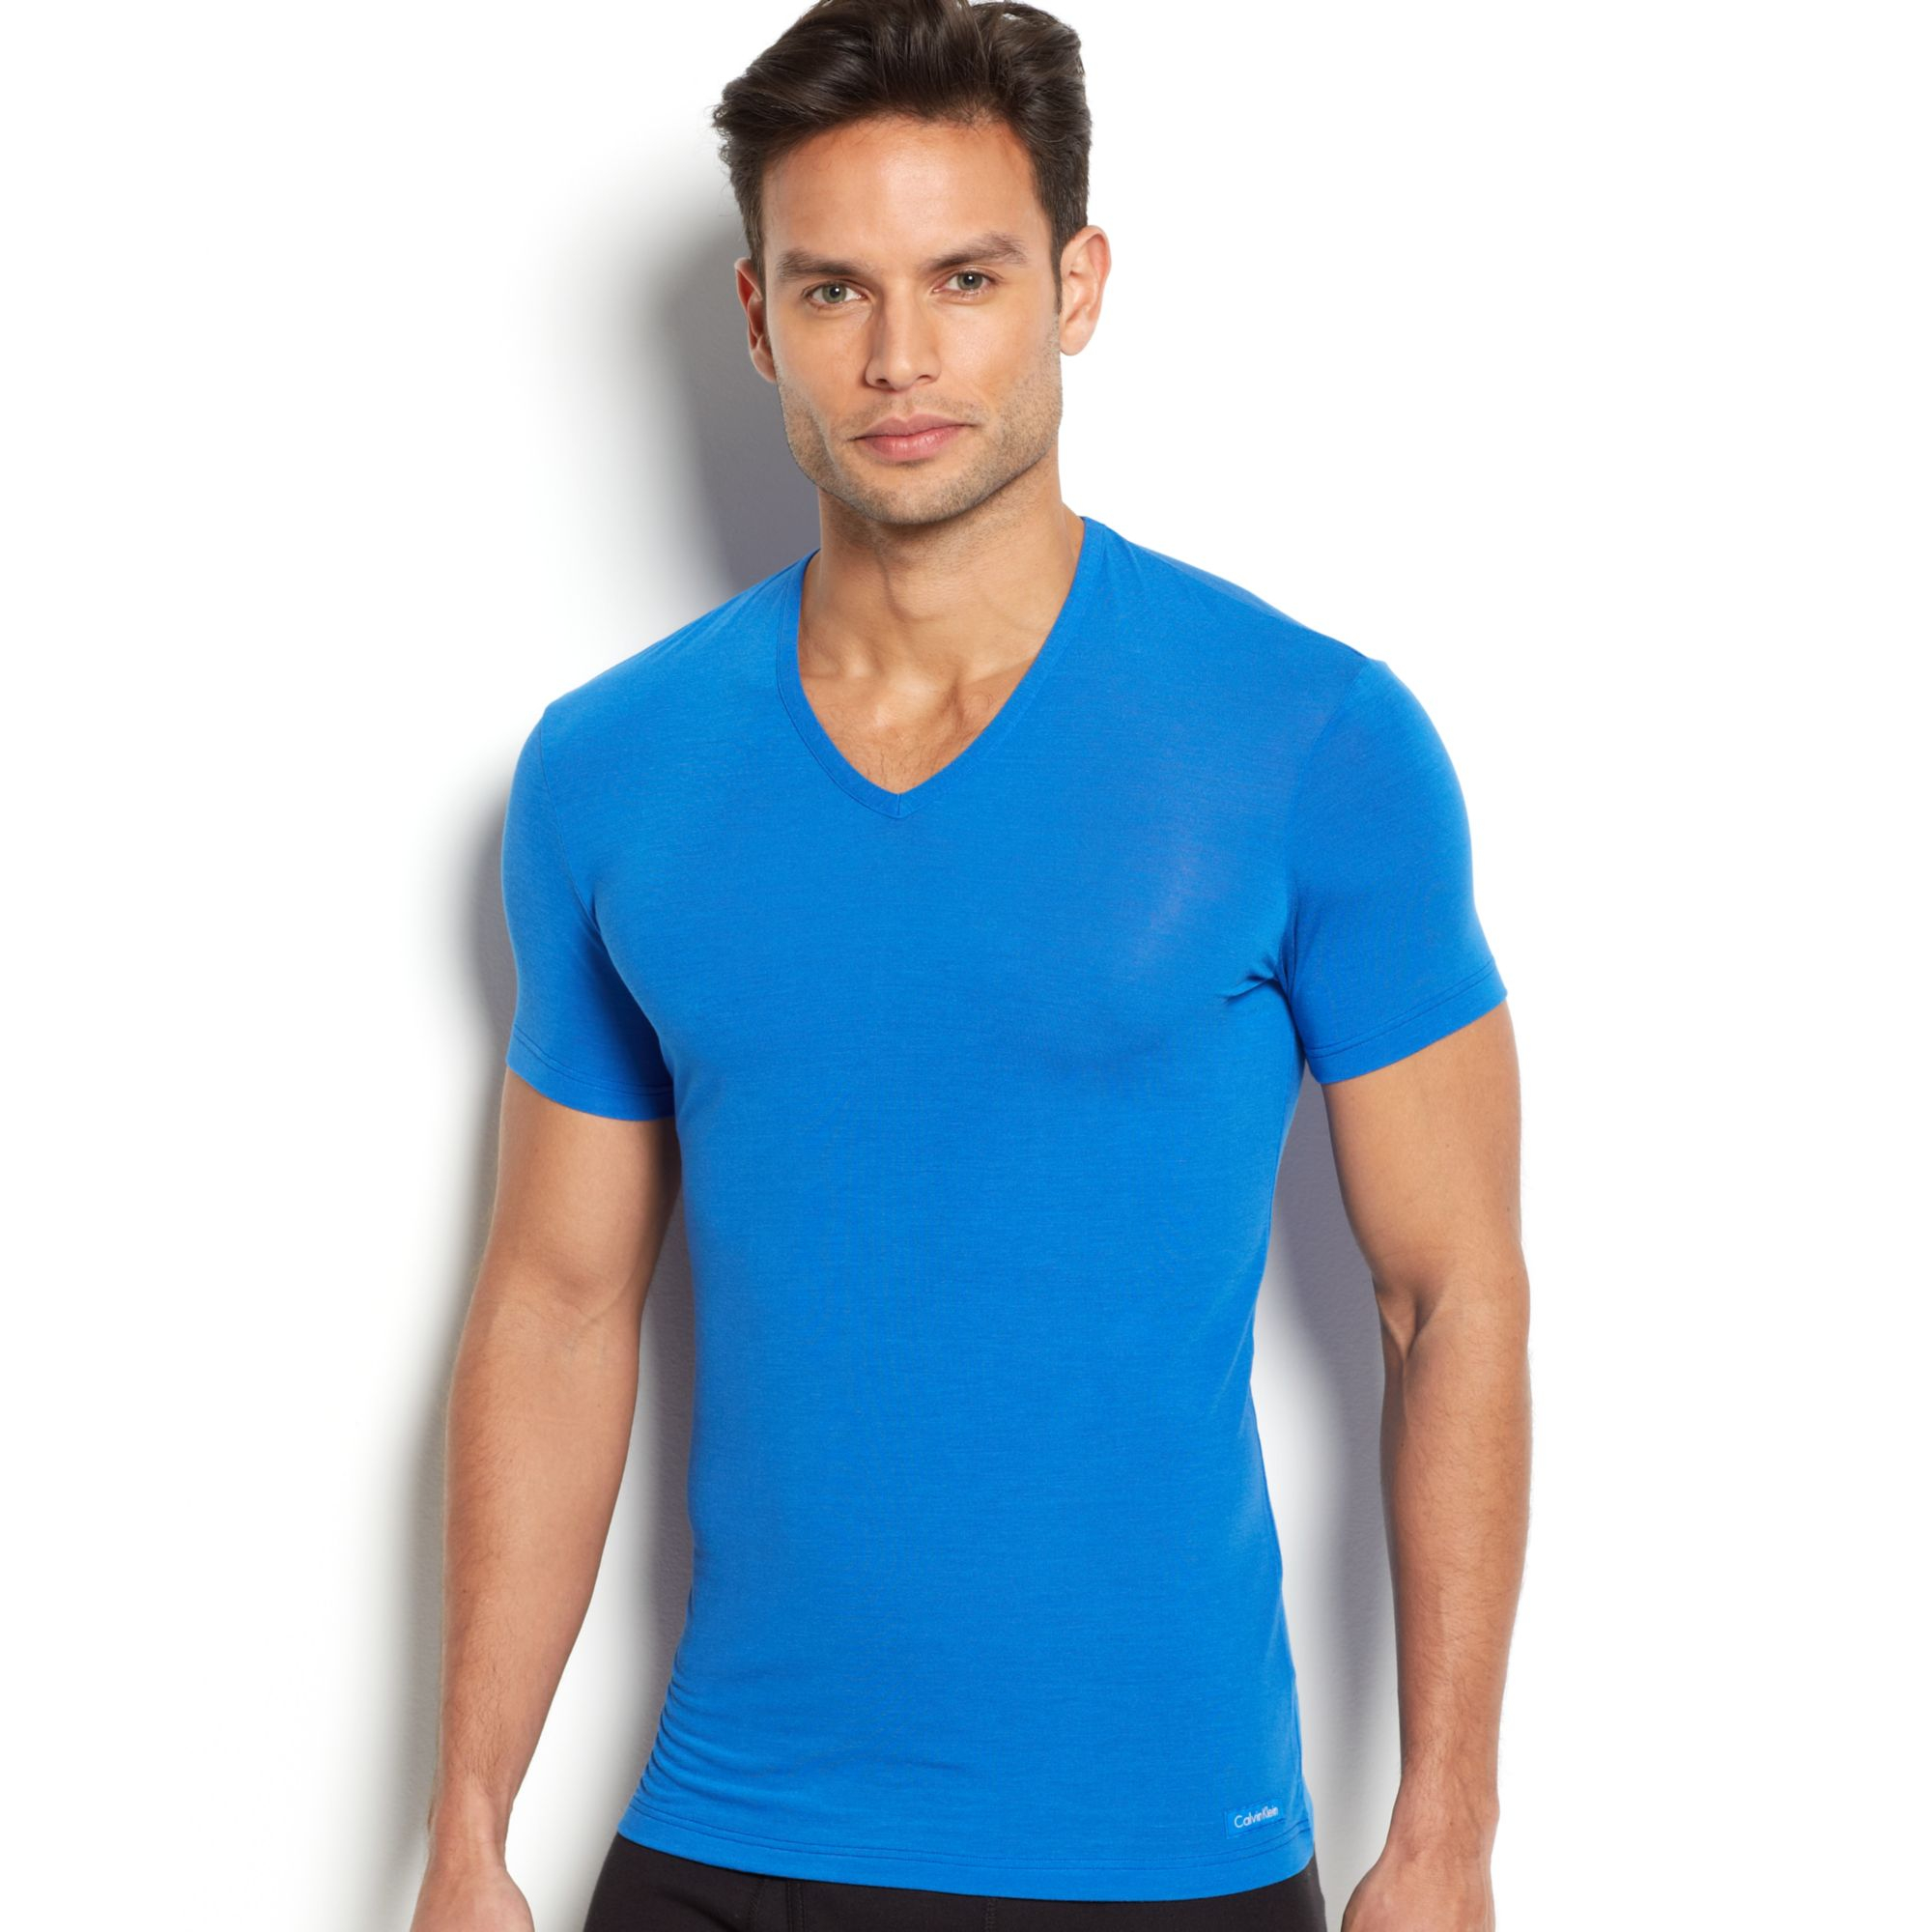 calvin klein mens vneck body modal tshirt in blue for men